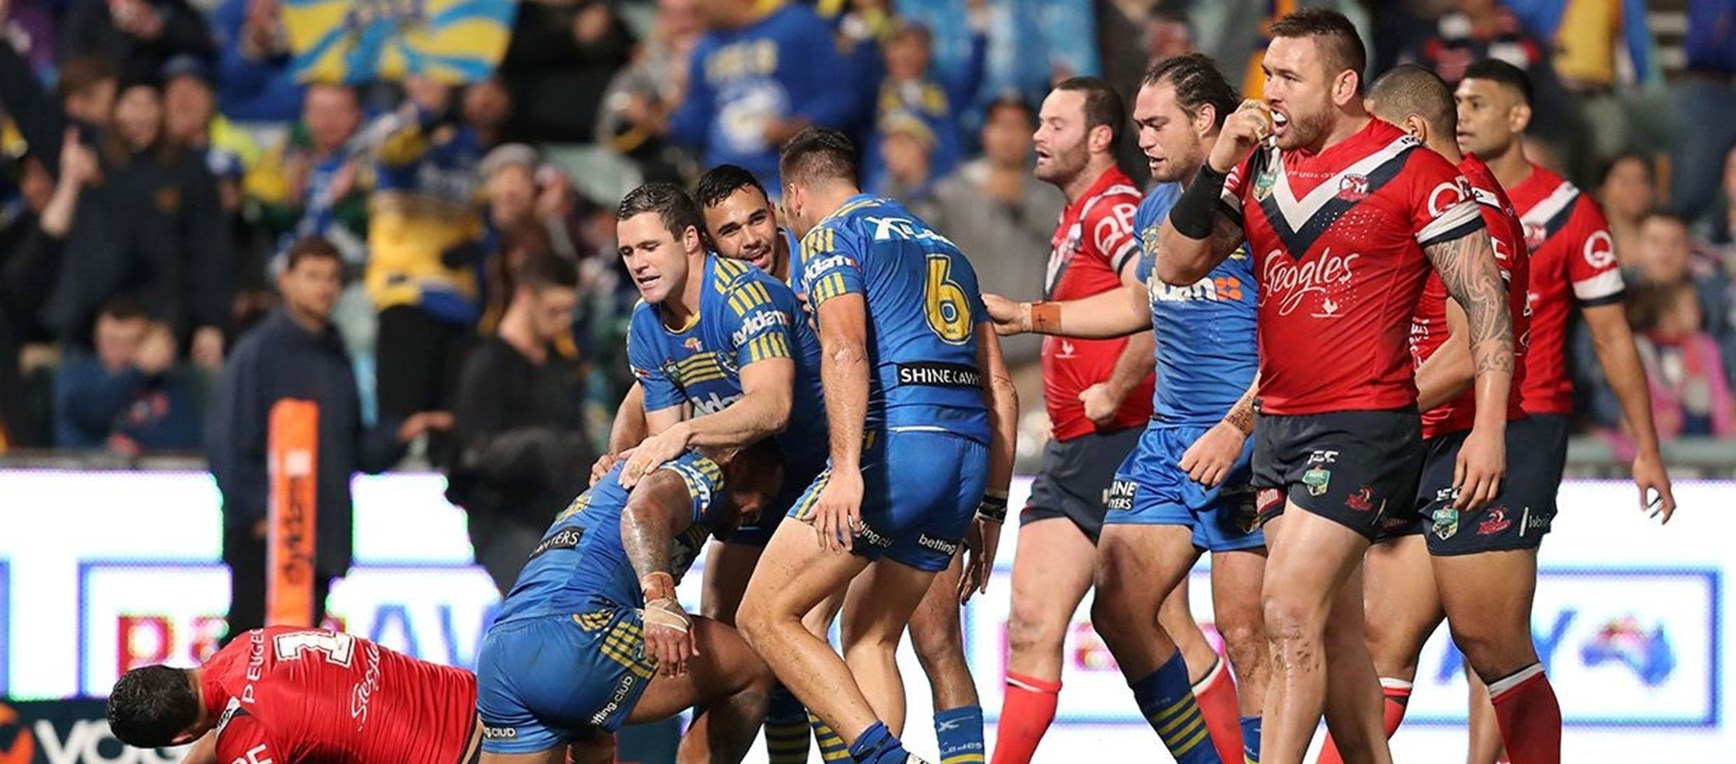 GALLERY | Eels v Roosters, Round 18